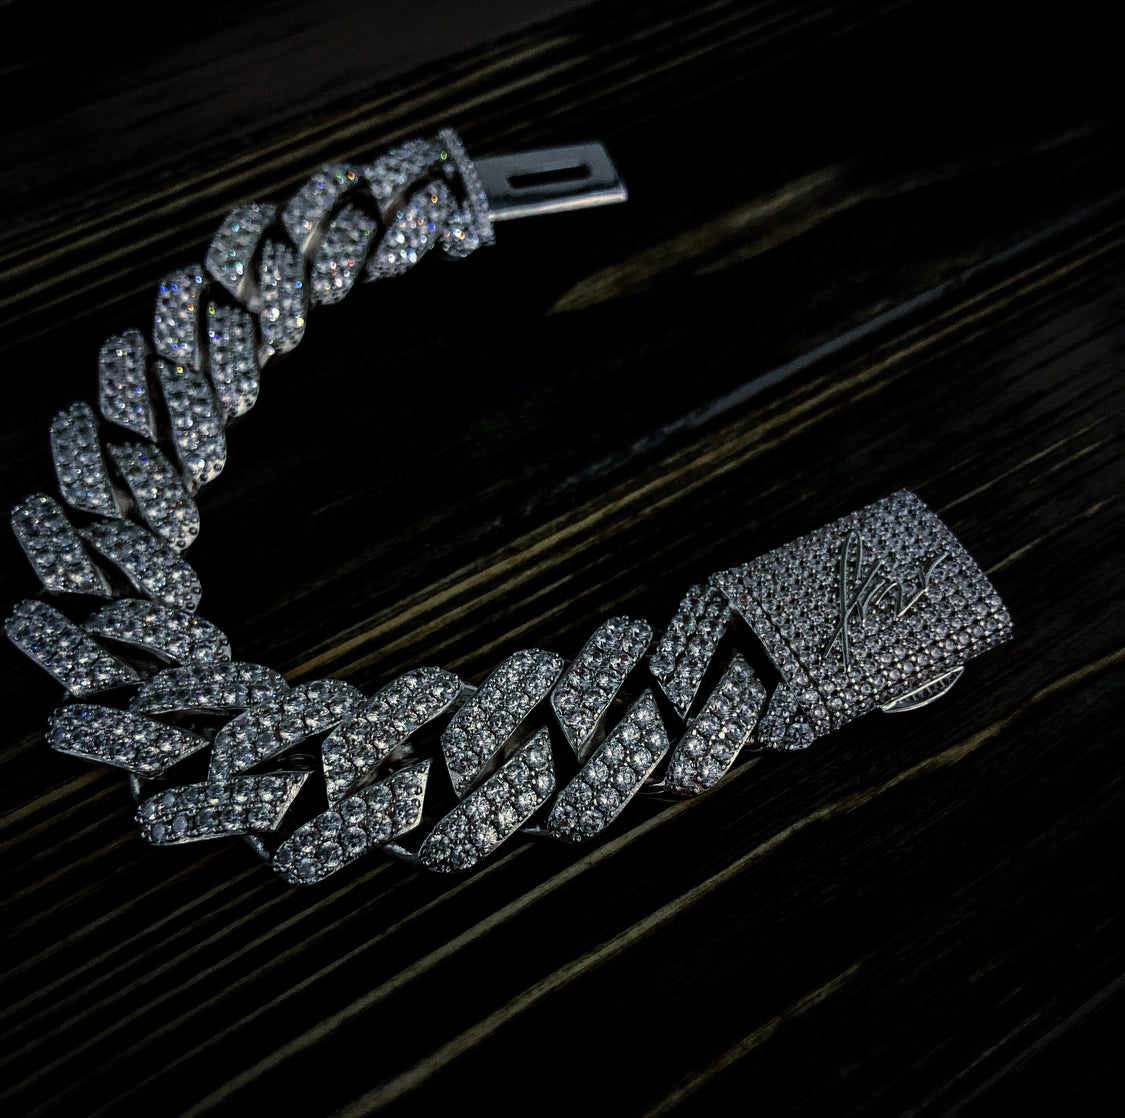 19mm Iced Out Sharp Cuban Link Armband Weißgold